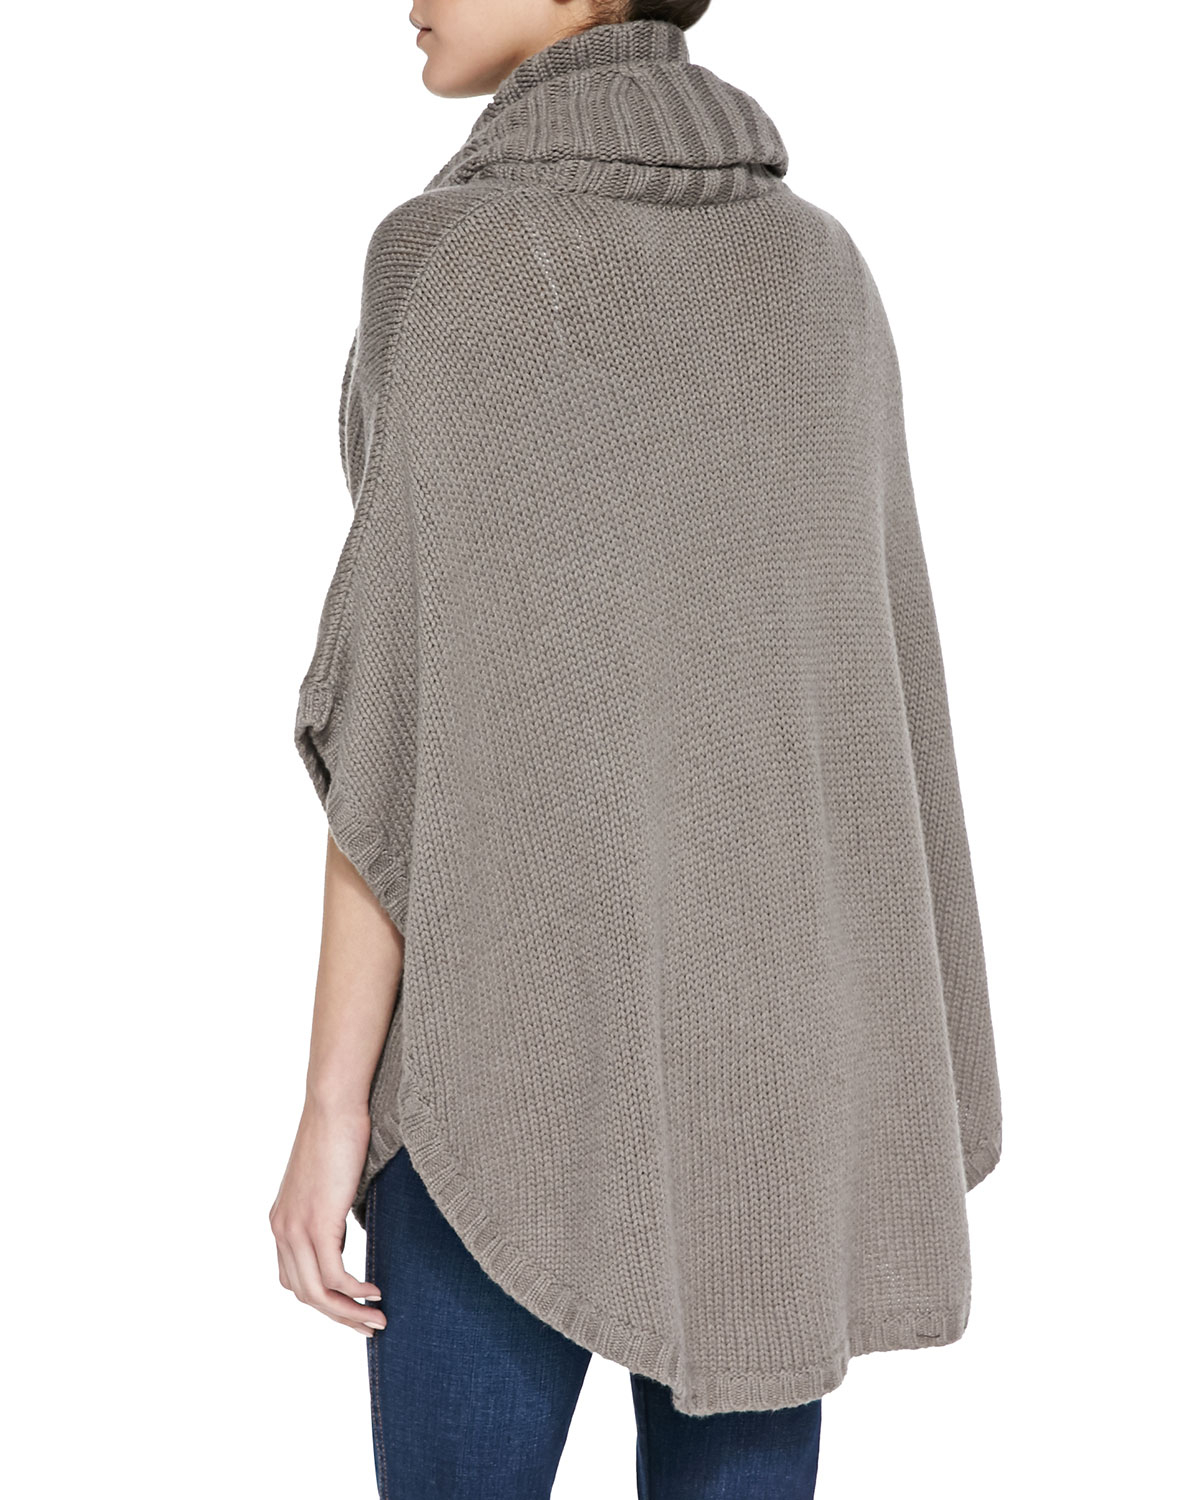 Knitting Pattern For Cashmere Poncho : Autumn cashmere Cable-knit Cowl-neck Cashmere Poncho in ...